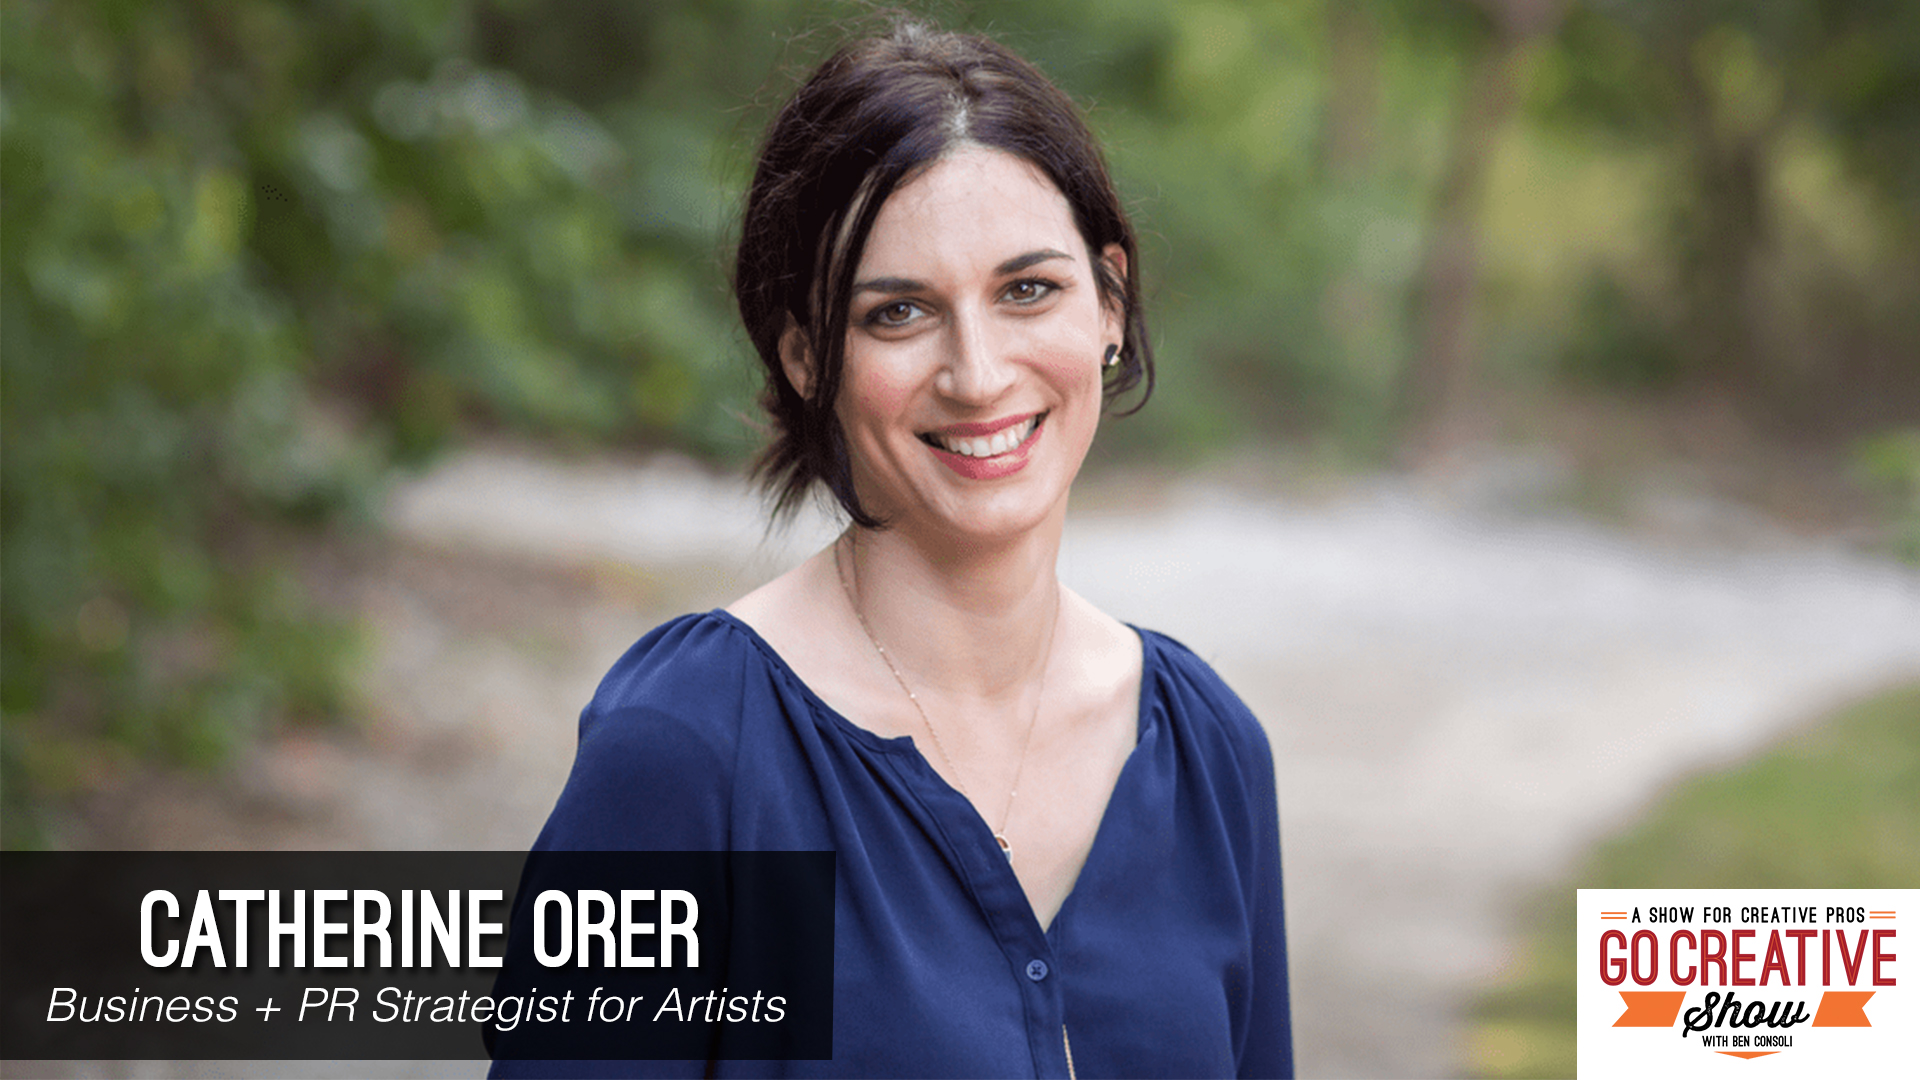 Catherine Orer on Go Creative Show with Ben Consoli